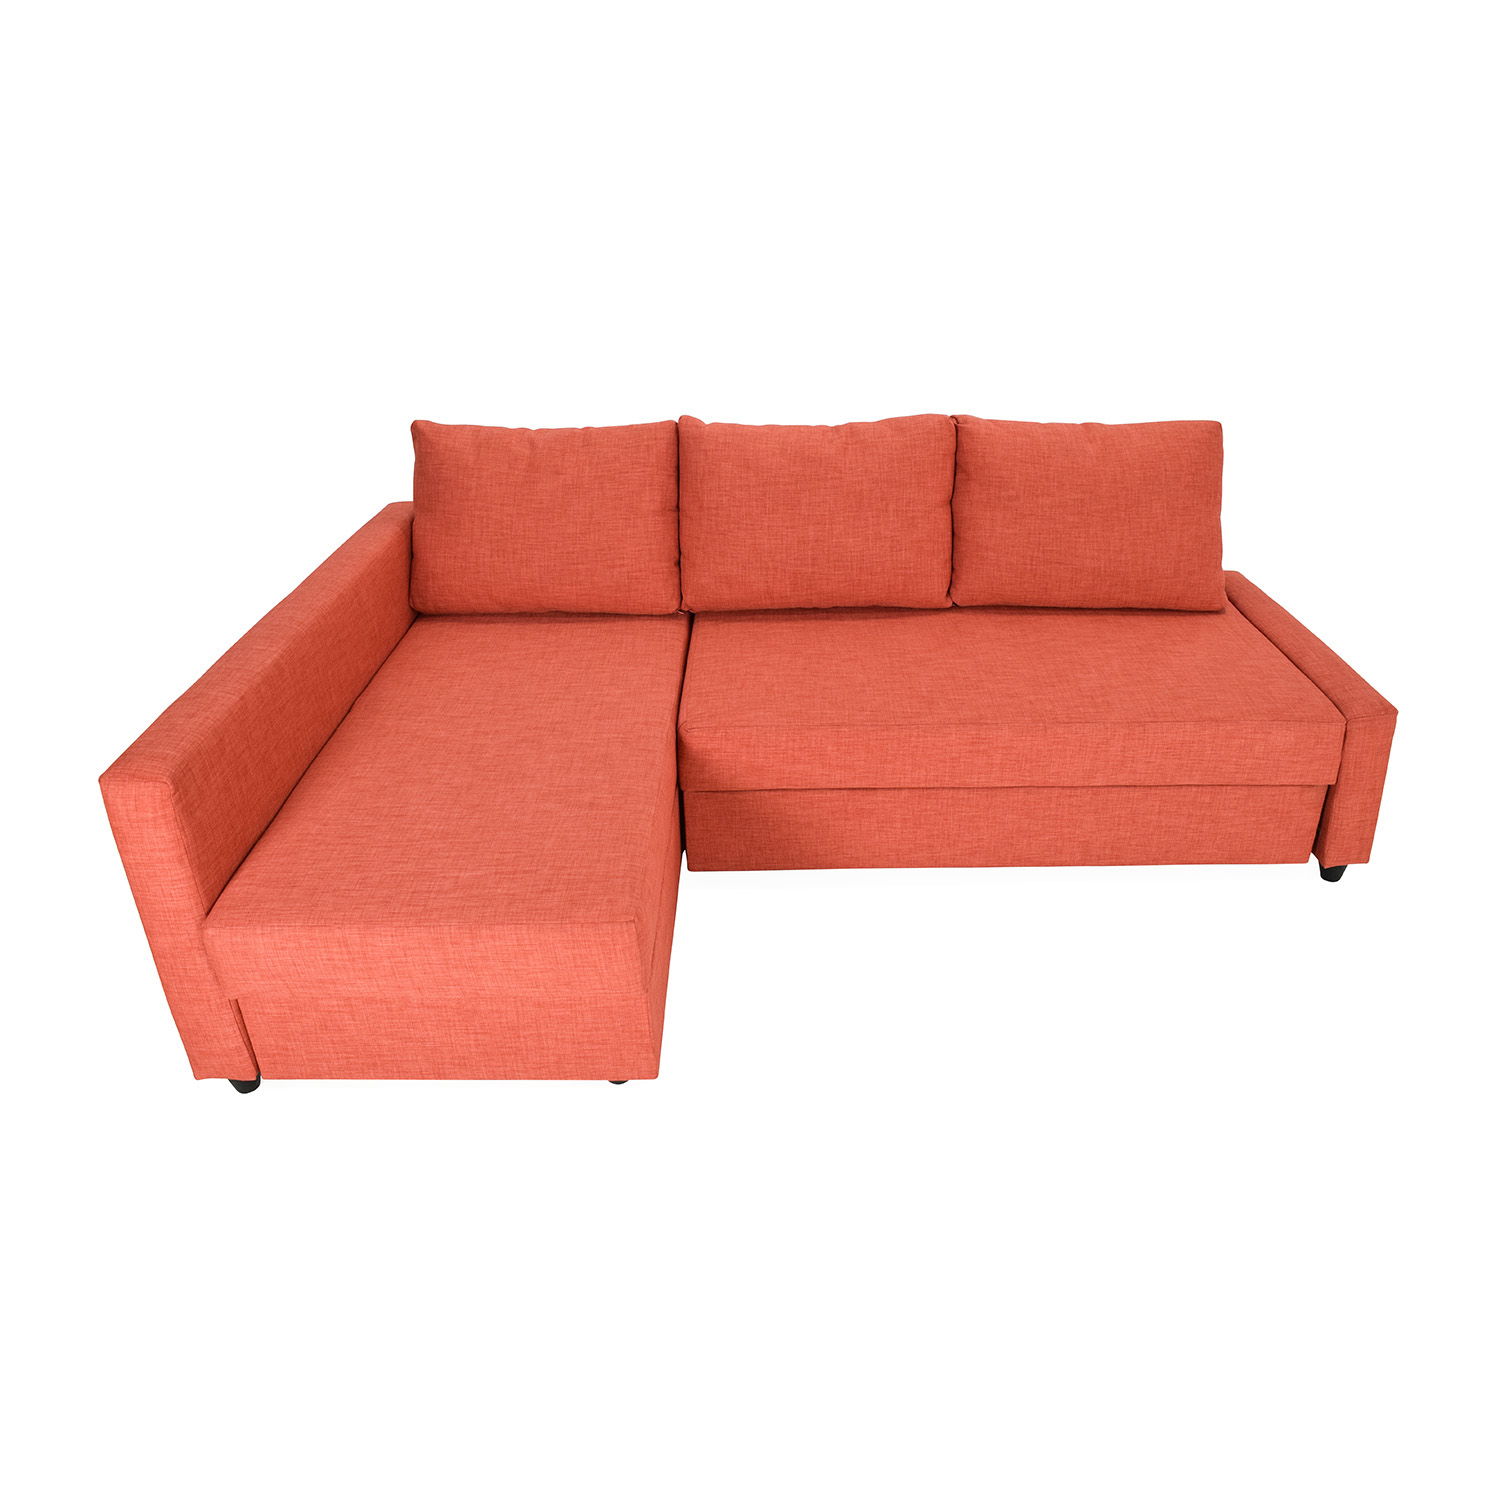 Ikea friheten sofa bed with chaise for sale with ikea chaise for Chaise design ikea